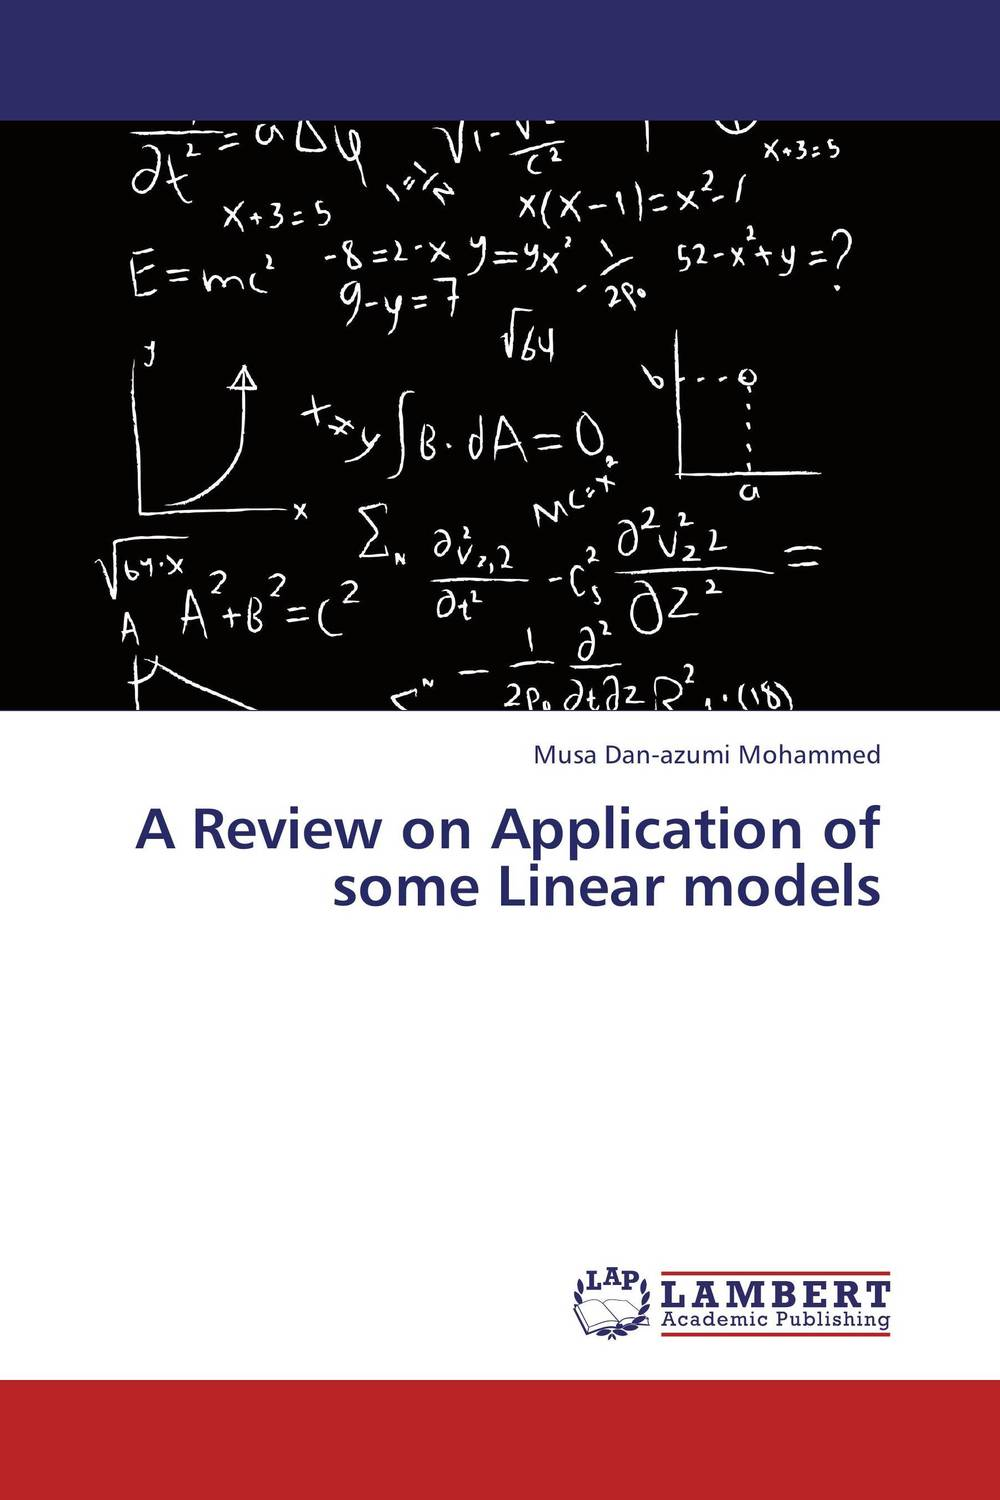 A Review on Application of some Linear models linear regression models with heteroscedastic errors